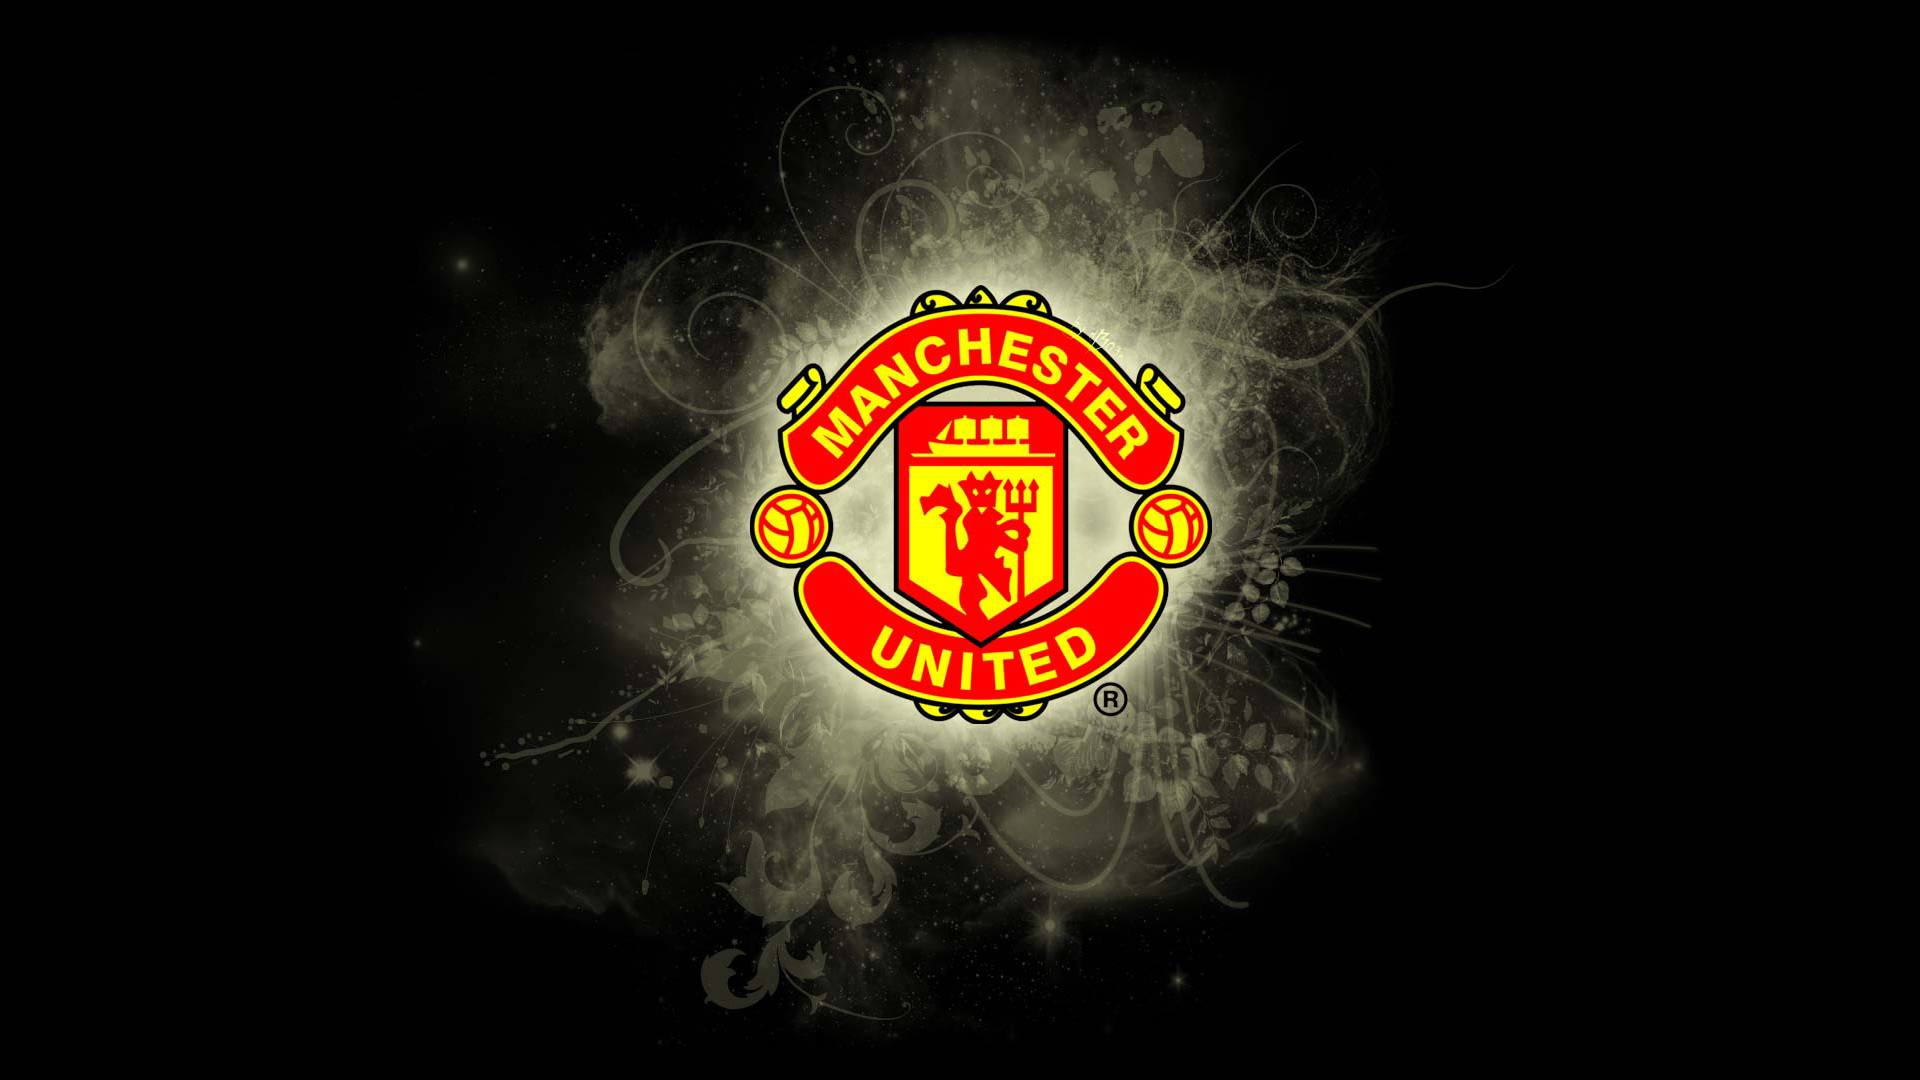 manchester united wallpaper for iphone 4 wallpaper football download